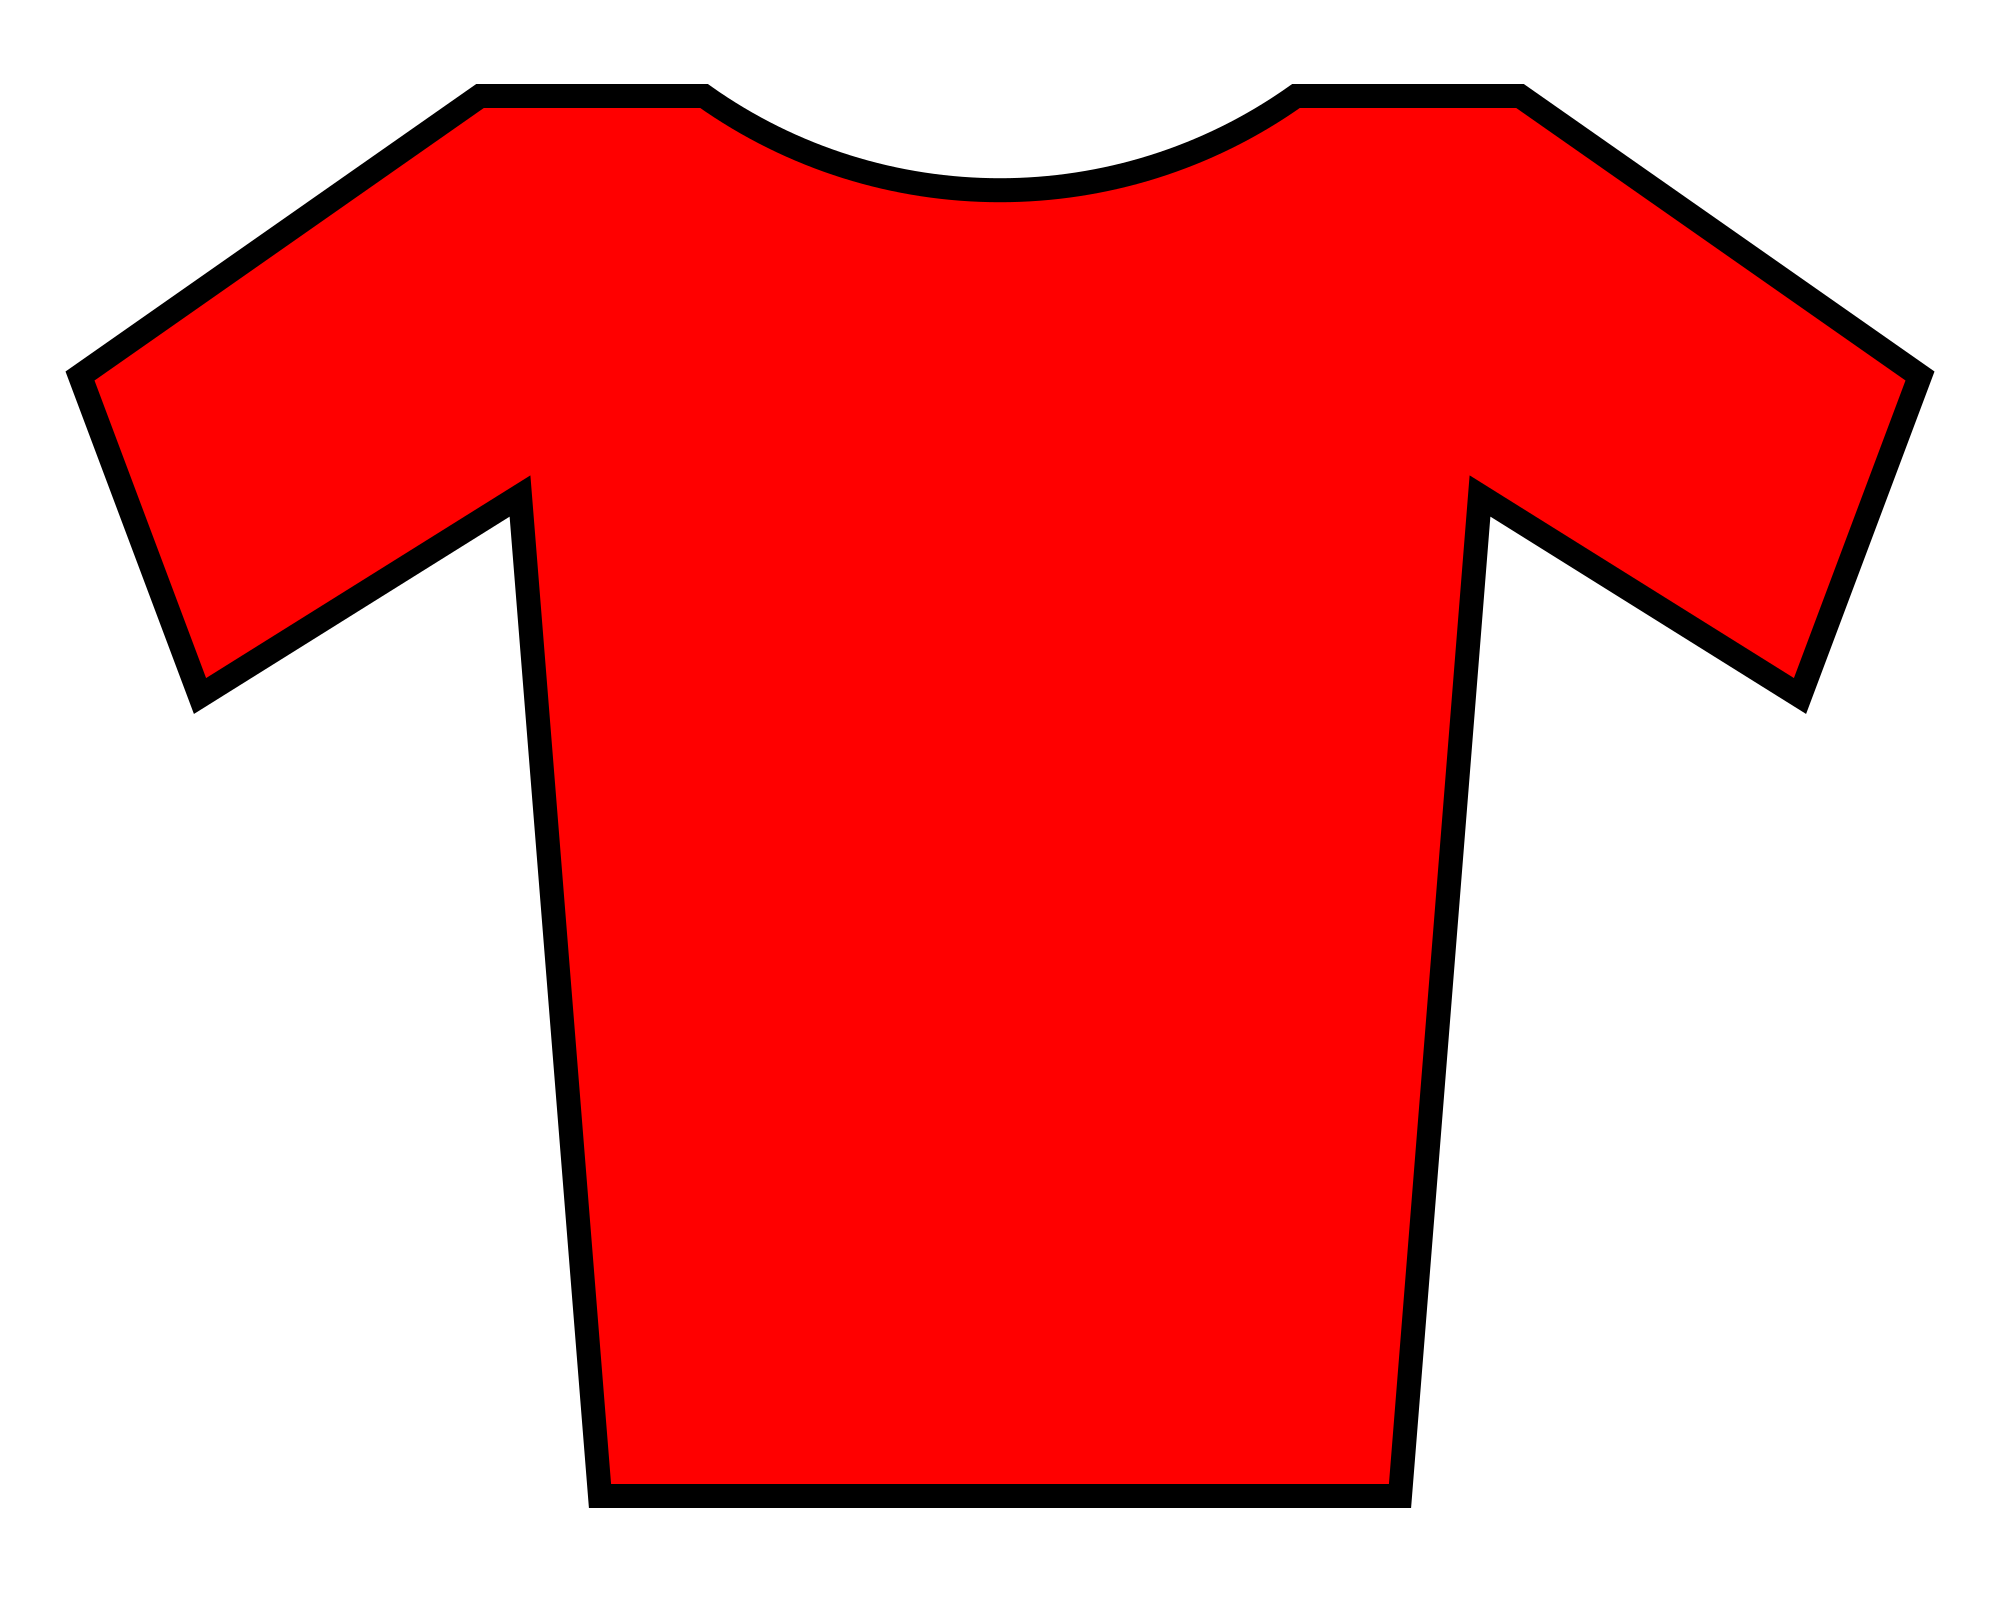 Jersey clipart red jersey. File svg wikimedia commons